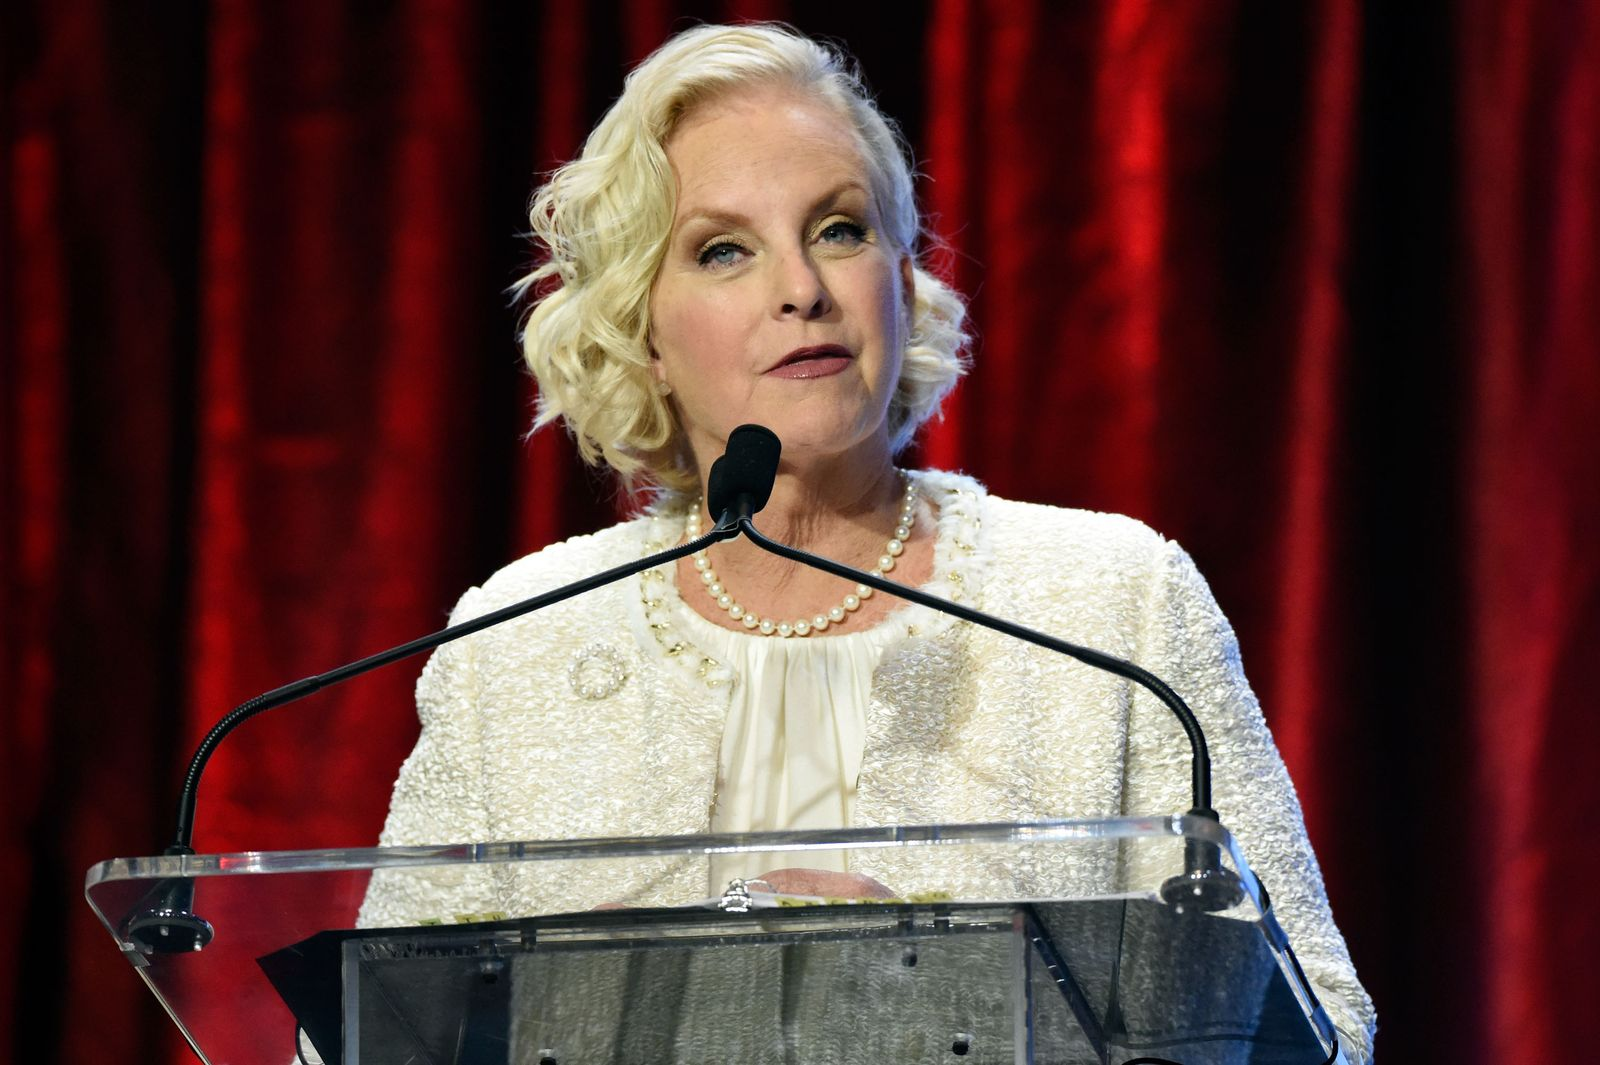 Cindy McCain at the Muhammad Ali Humanitarian Awards at Marriott Louisville Downtown on September 17, 2016. | Photo: Getty Images